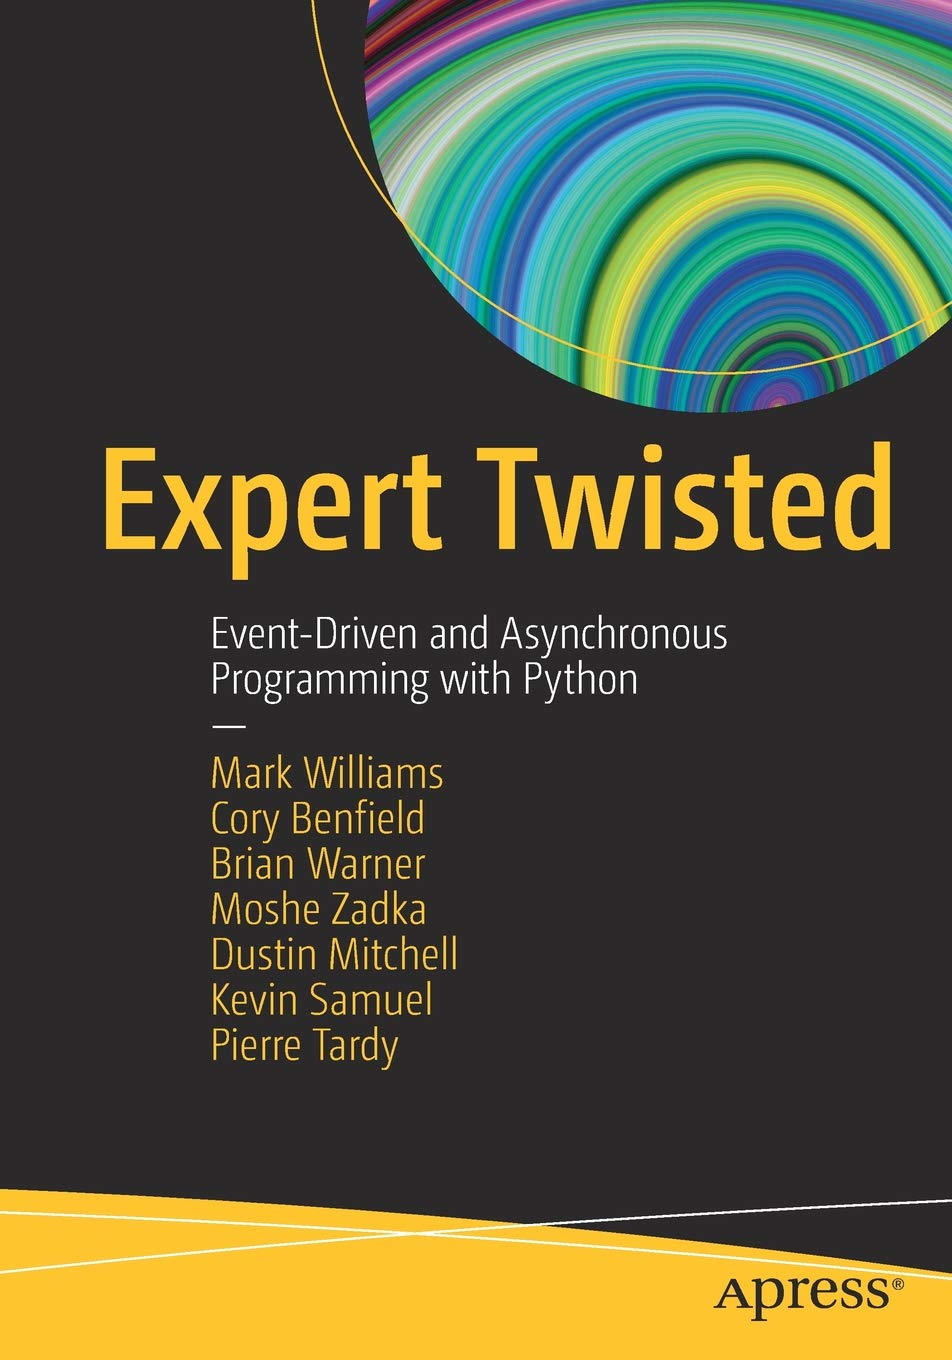 Expert Twisted: Event-Driven and Asynchronous Programming